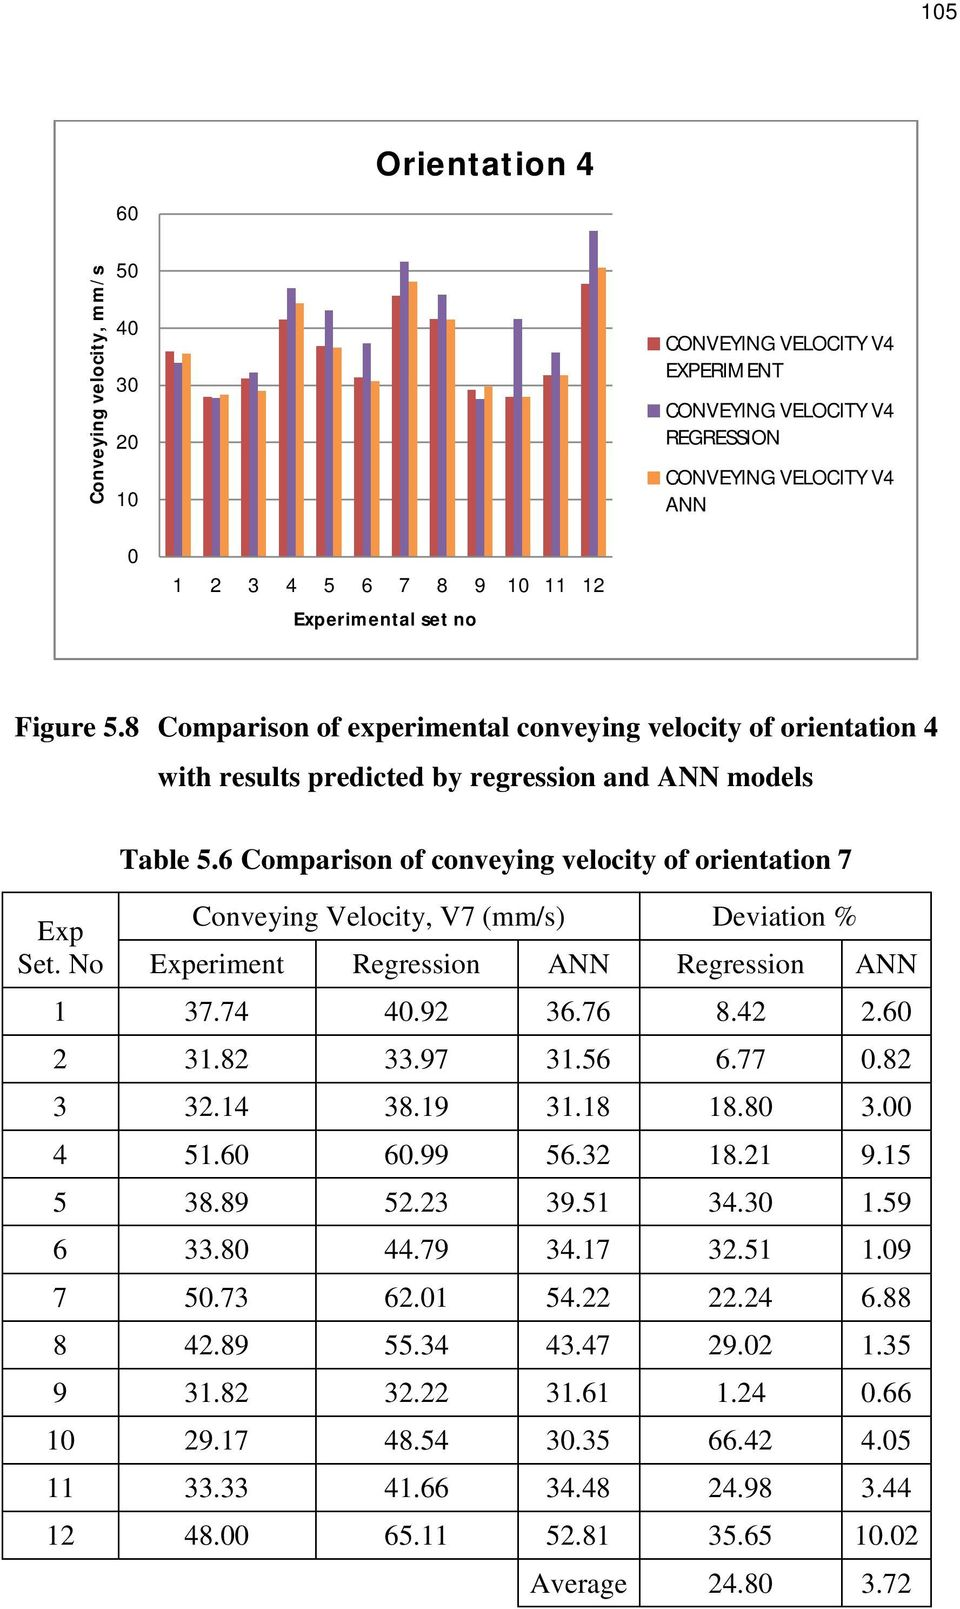 6 Comparison of conveying velocity of orientation 7 Conveying Velocity, V7 (mm/s) Deviation % Experiment Regression ANN Regression ANN 1 37.74 40.92 36.76 8.42 2.60 2 31.82 33.97 31.56 6.77 0.82 3 32.